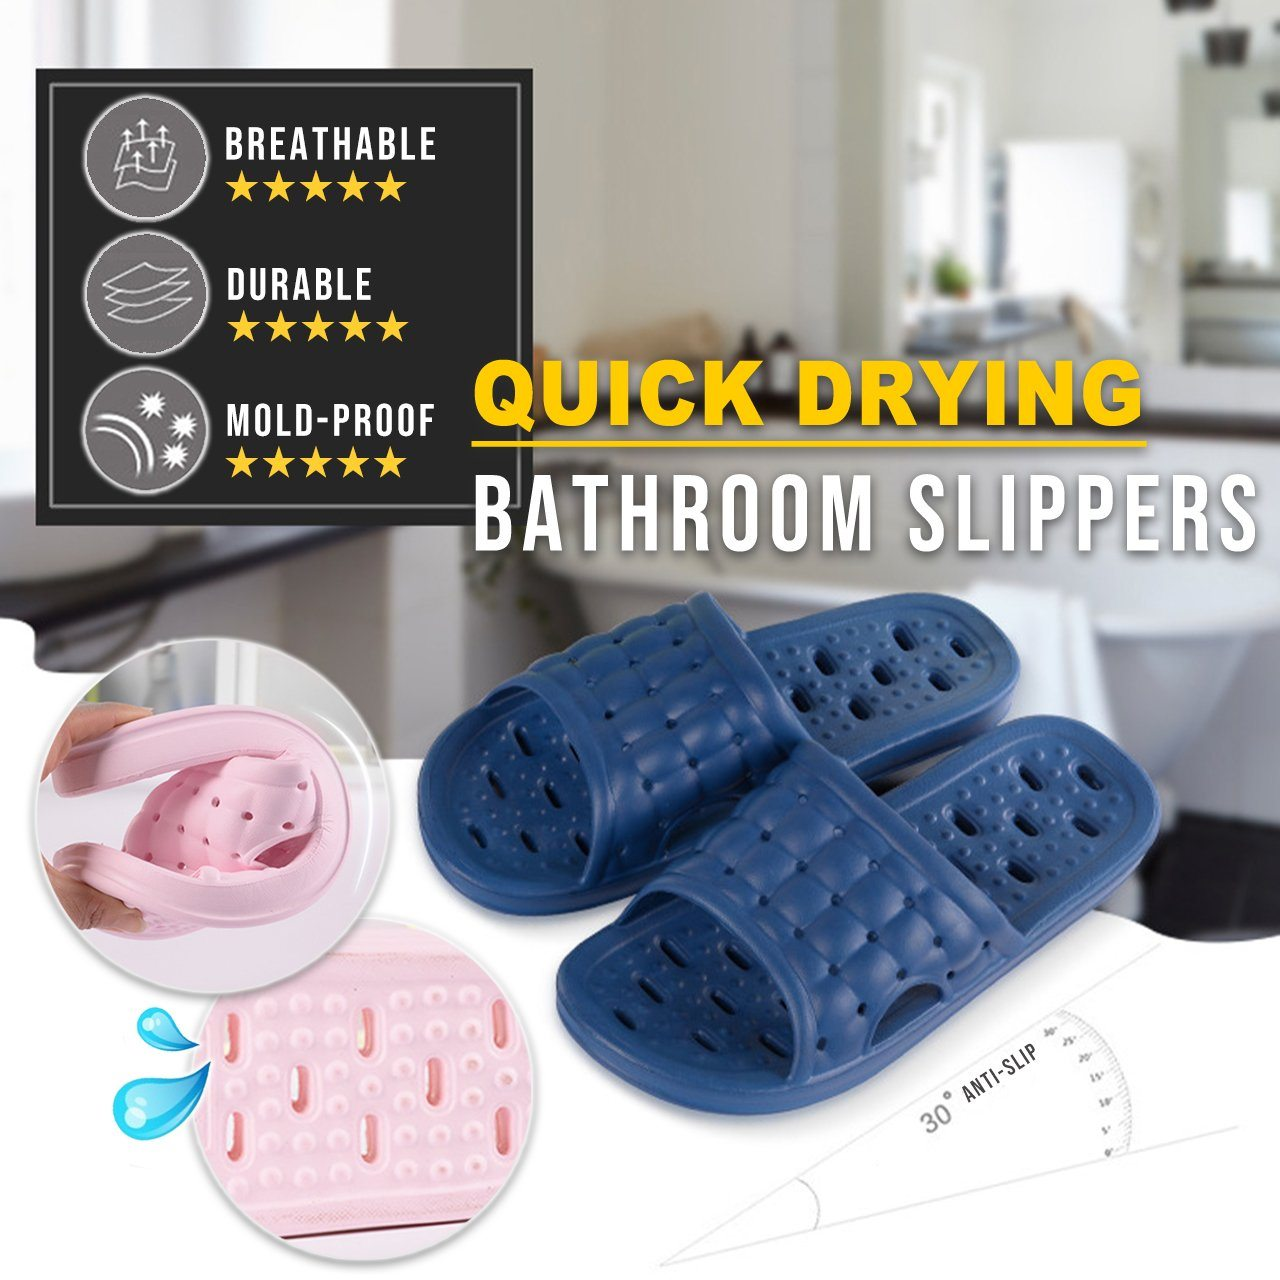 Quick Drying Bathroom Slippers